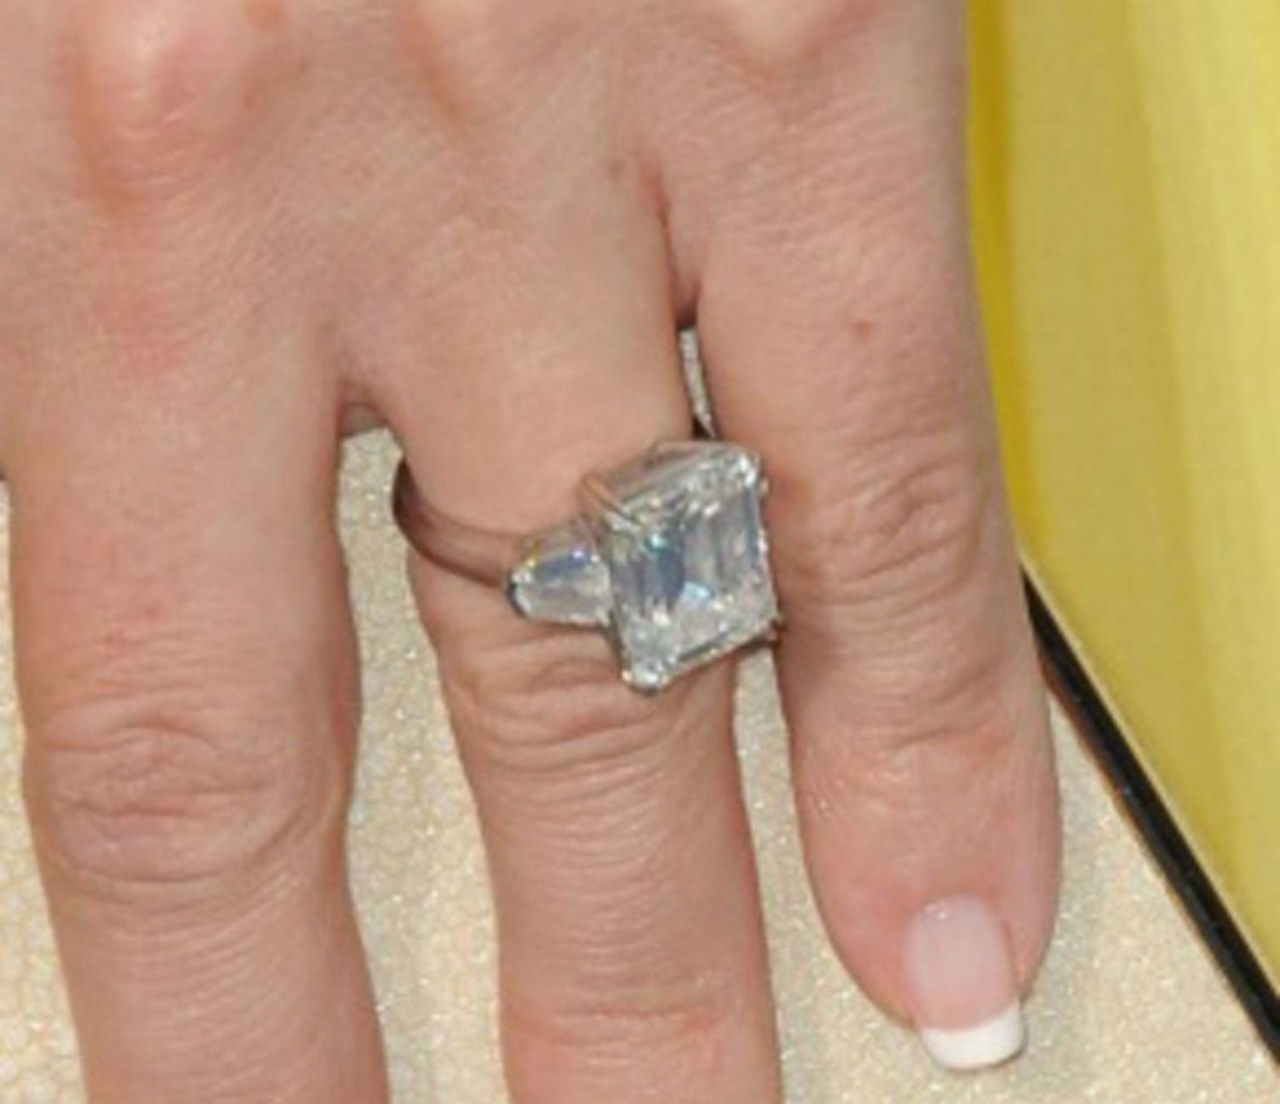 2 kate hudson engagement ring matthew bellamy new engagement ring 1117